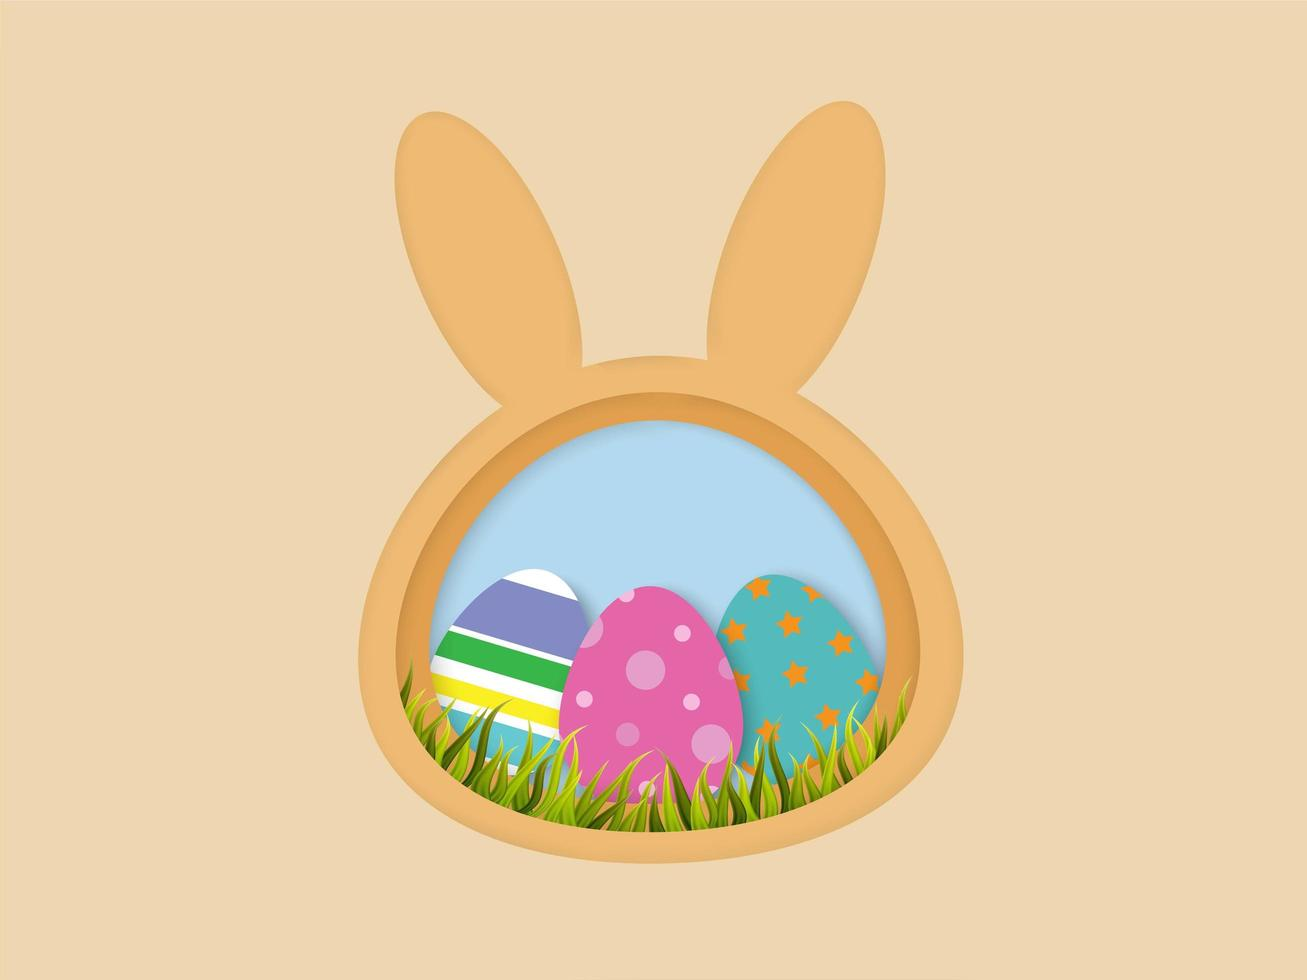 Paper cut style Easter eggs and grass in bunny shape frame vector